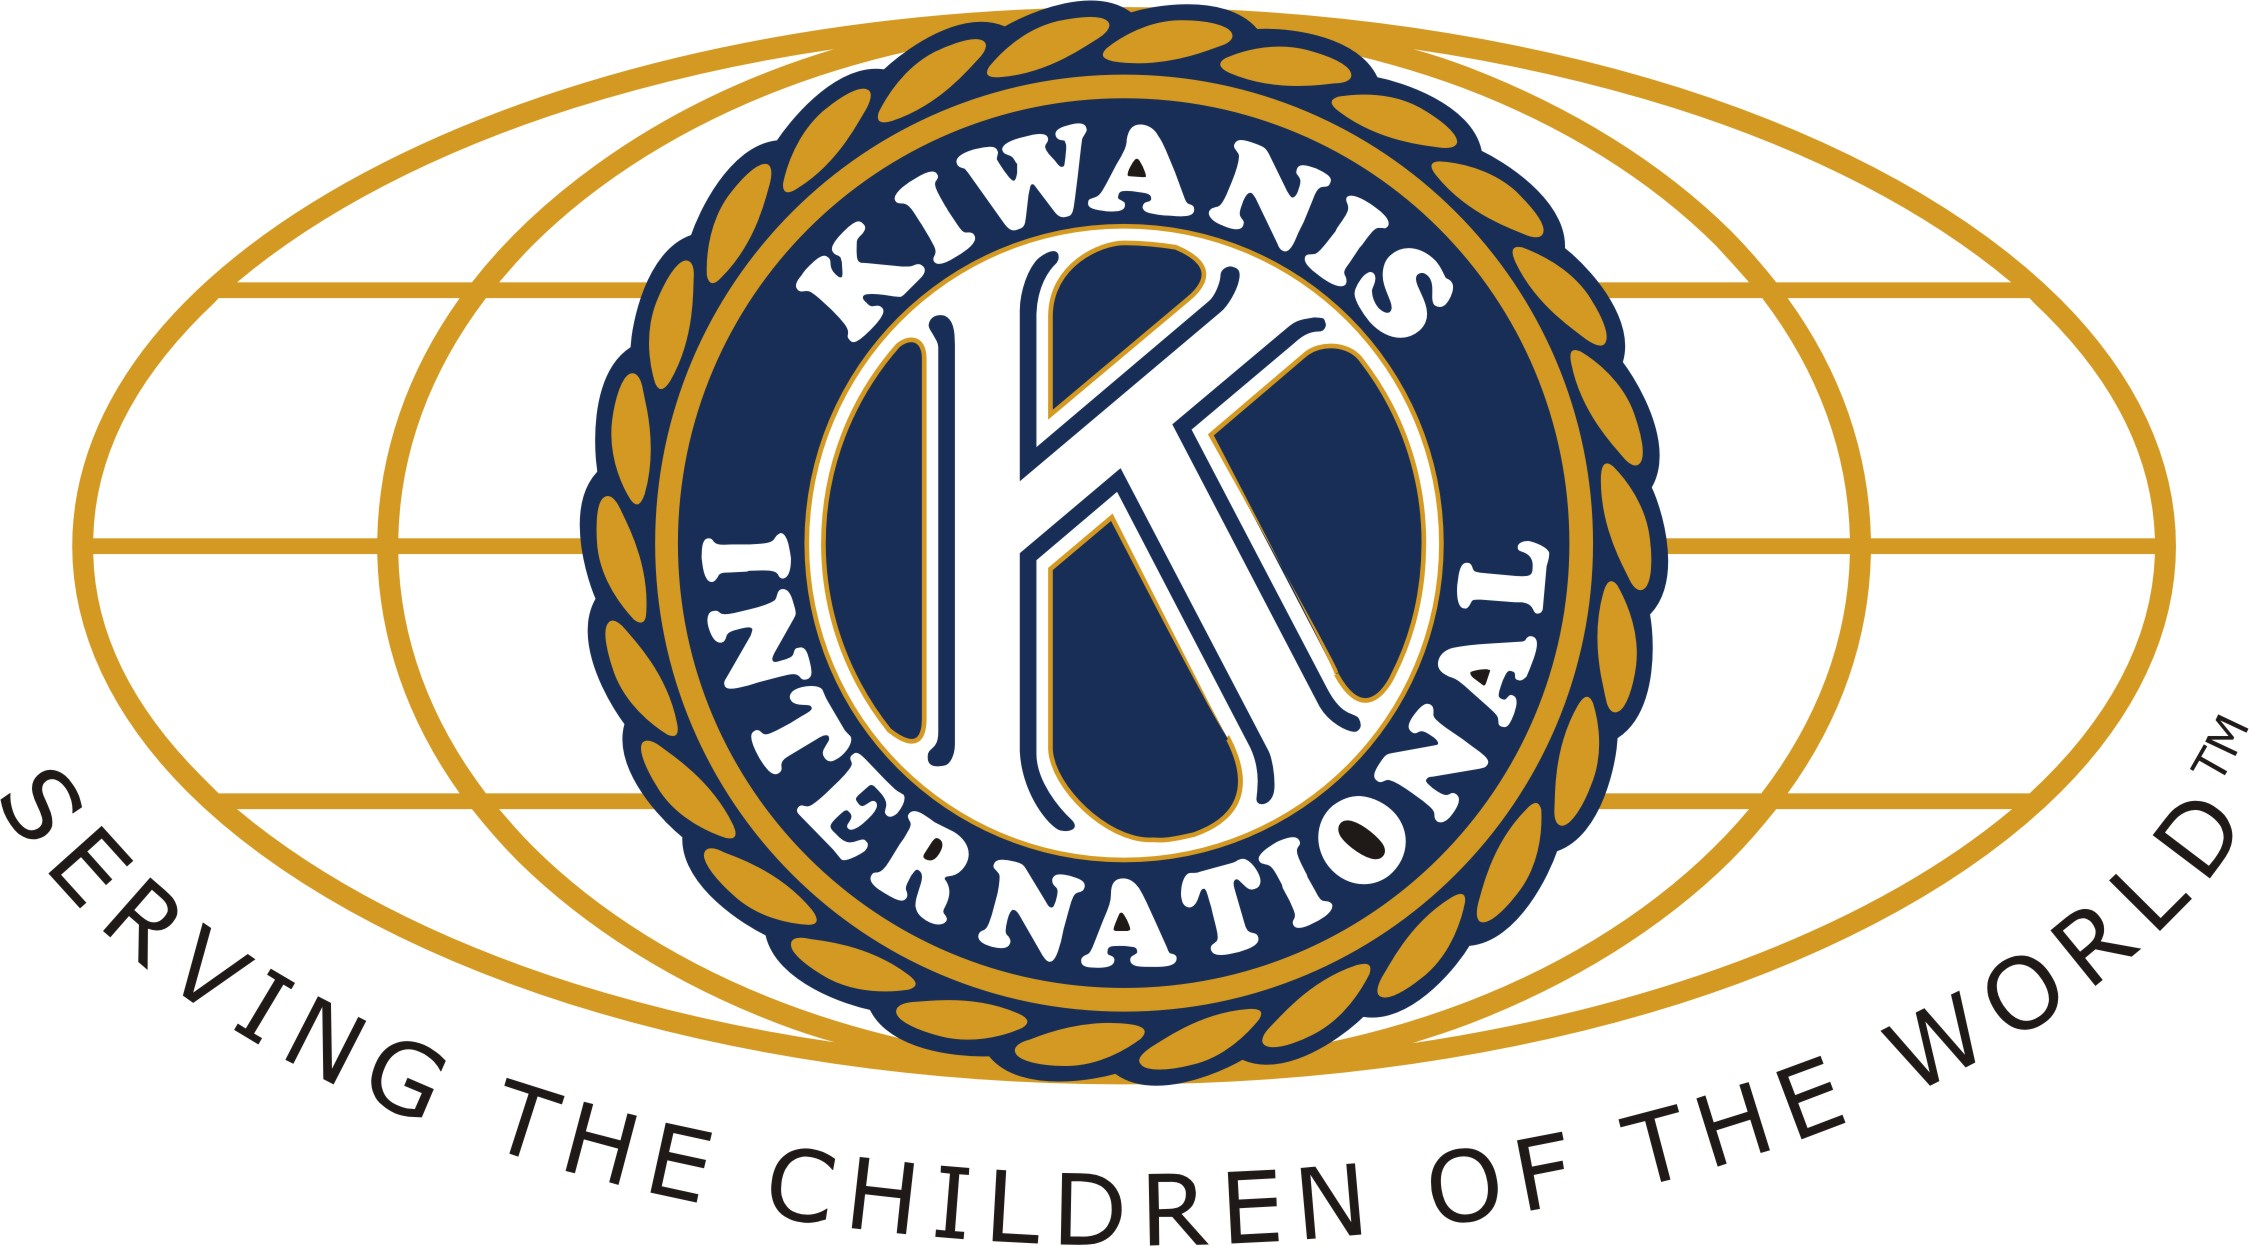 KIwanis of the Big Bend logo